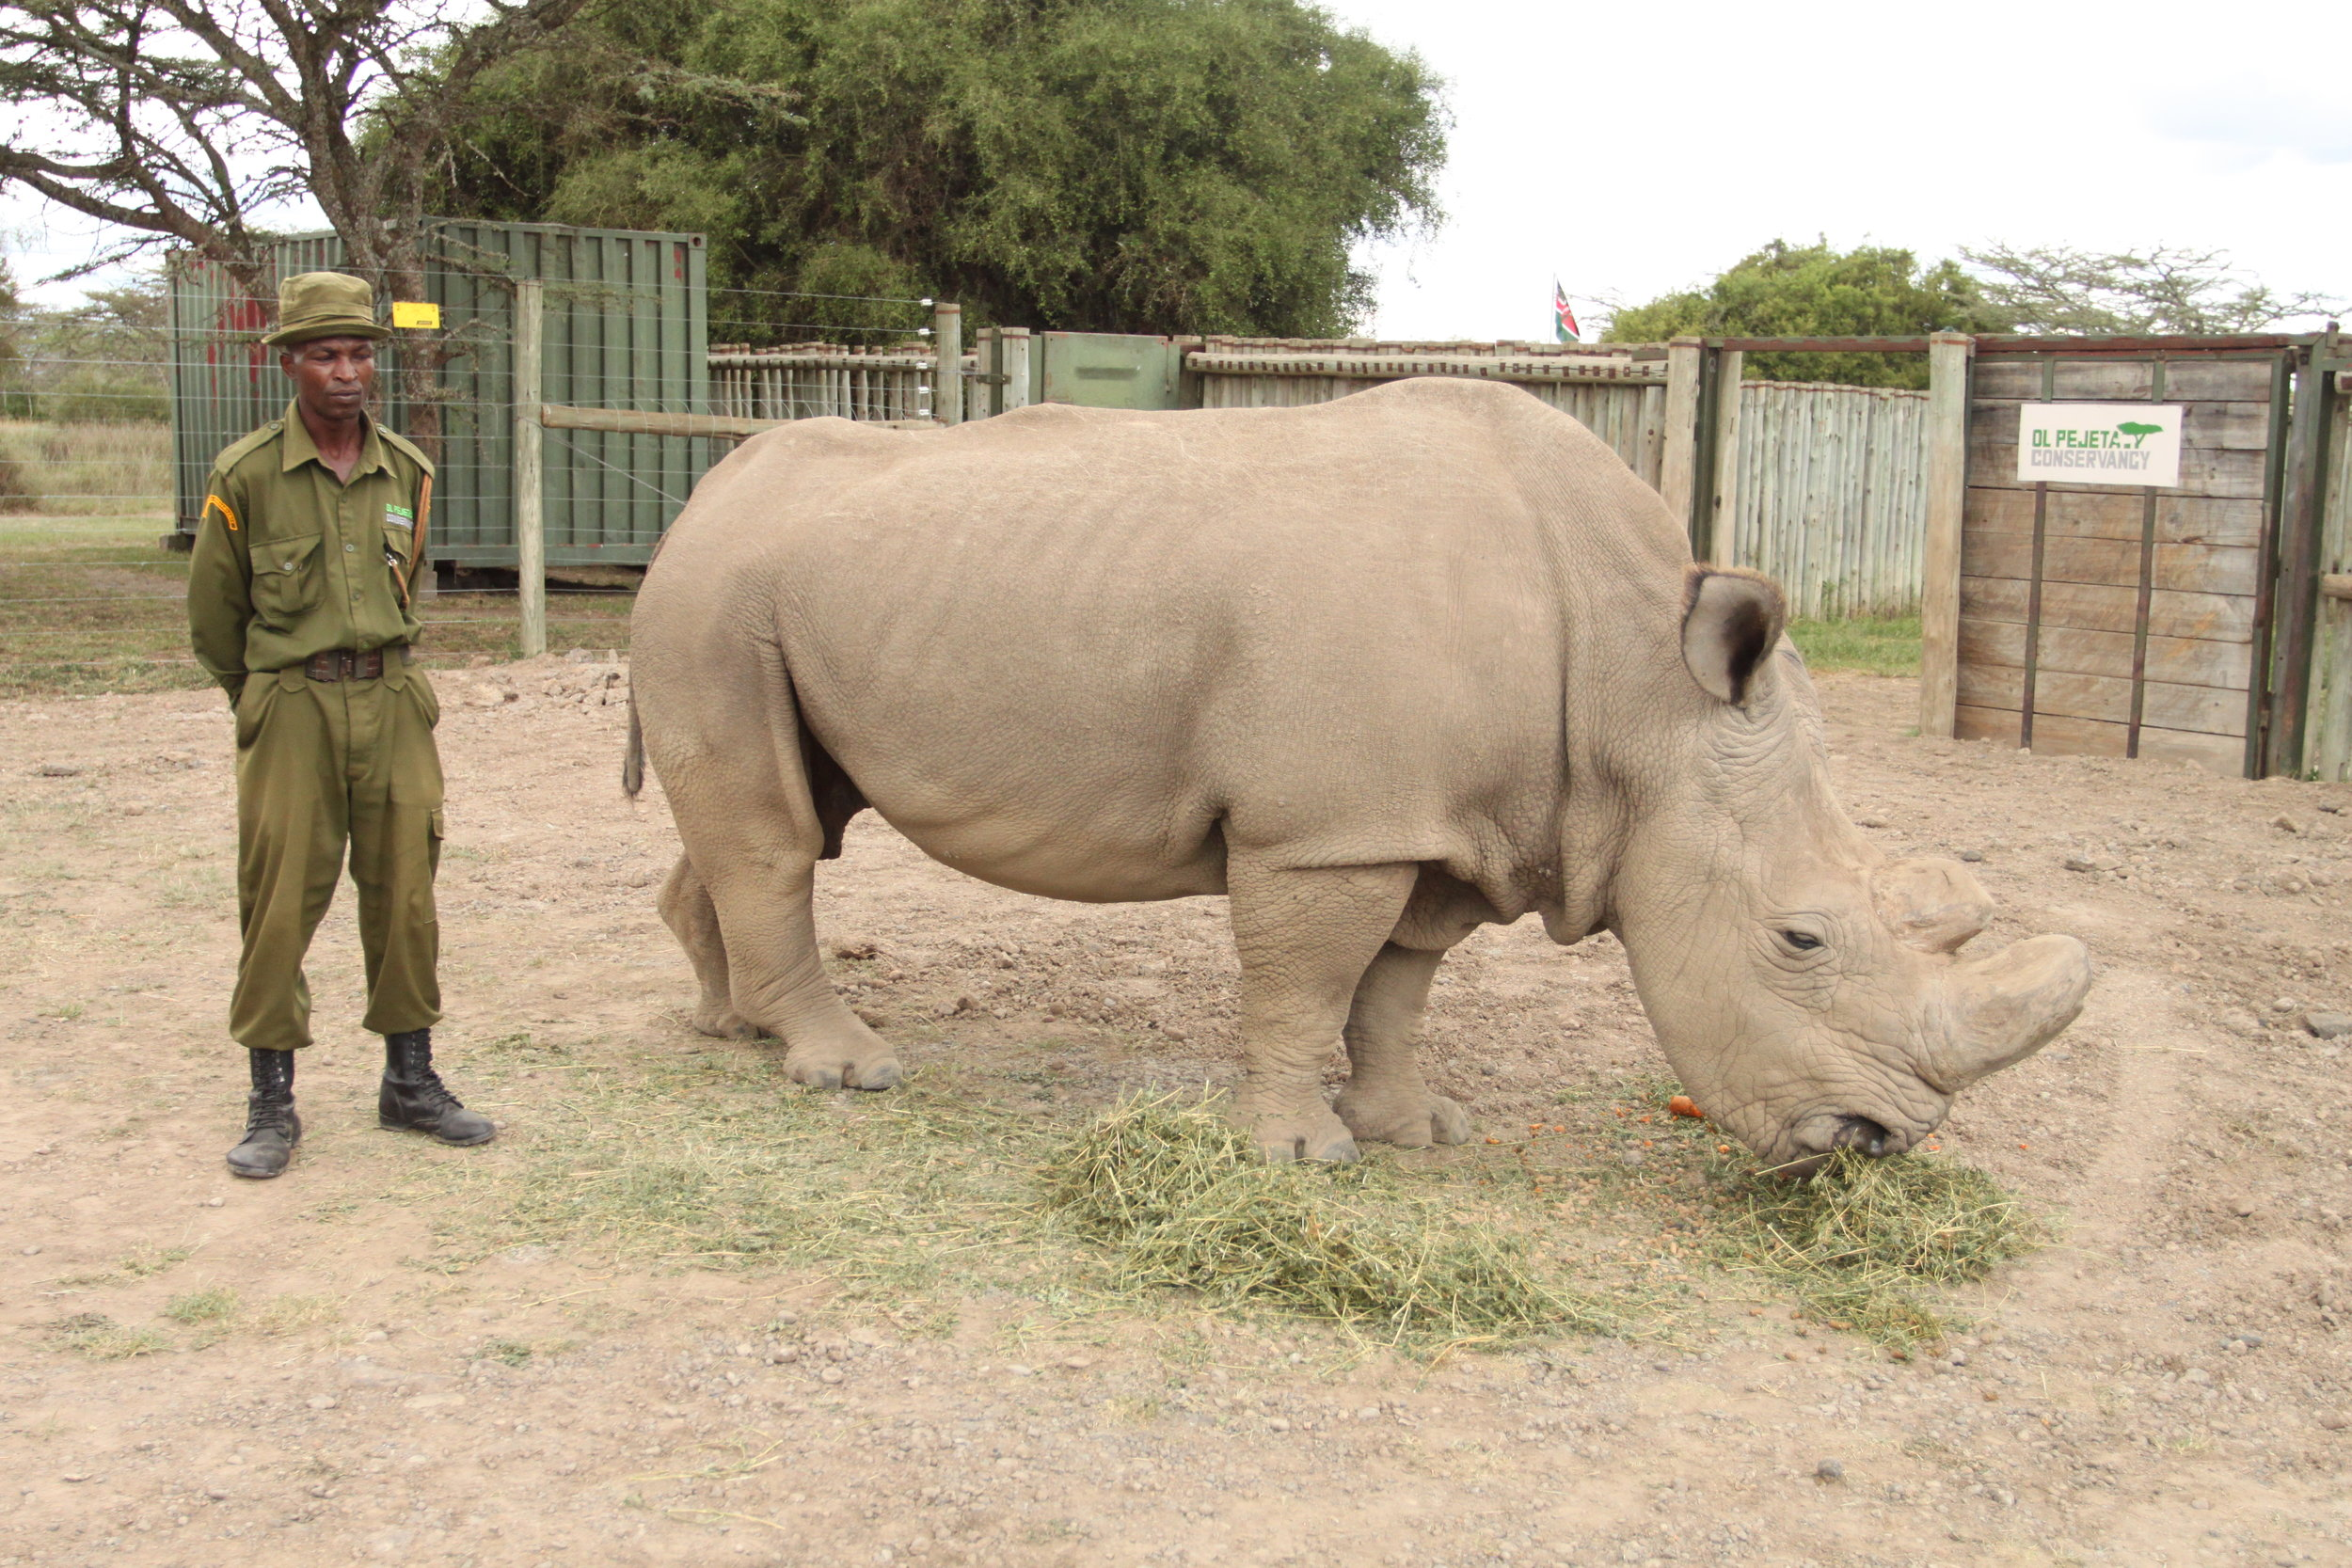 The Last of His Kind - The complete story of Sudan, the world's last male northern white rhino. Although Sudan passed away in March 2018, efforts to save his subspecies from extinction continue.